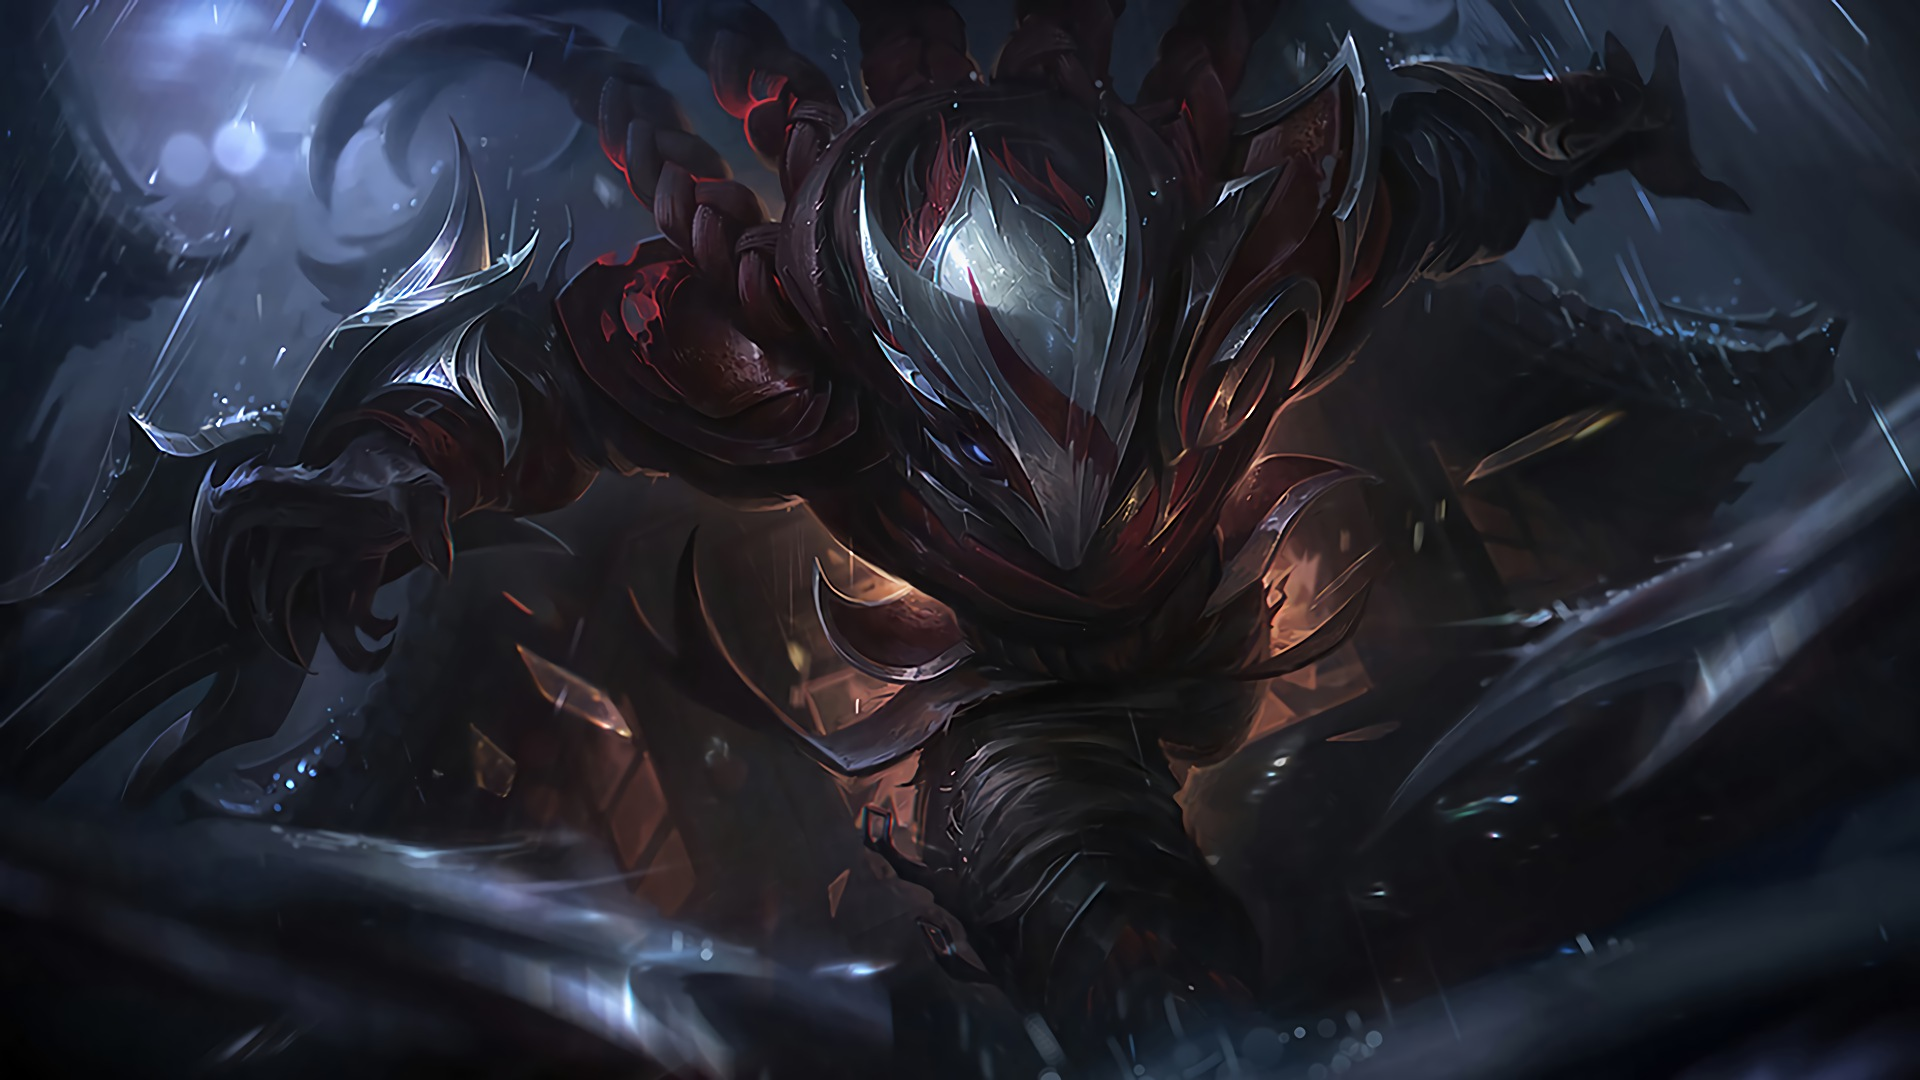 Blood Moon Talon Lolwallpapers